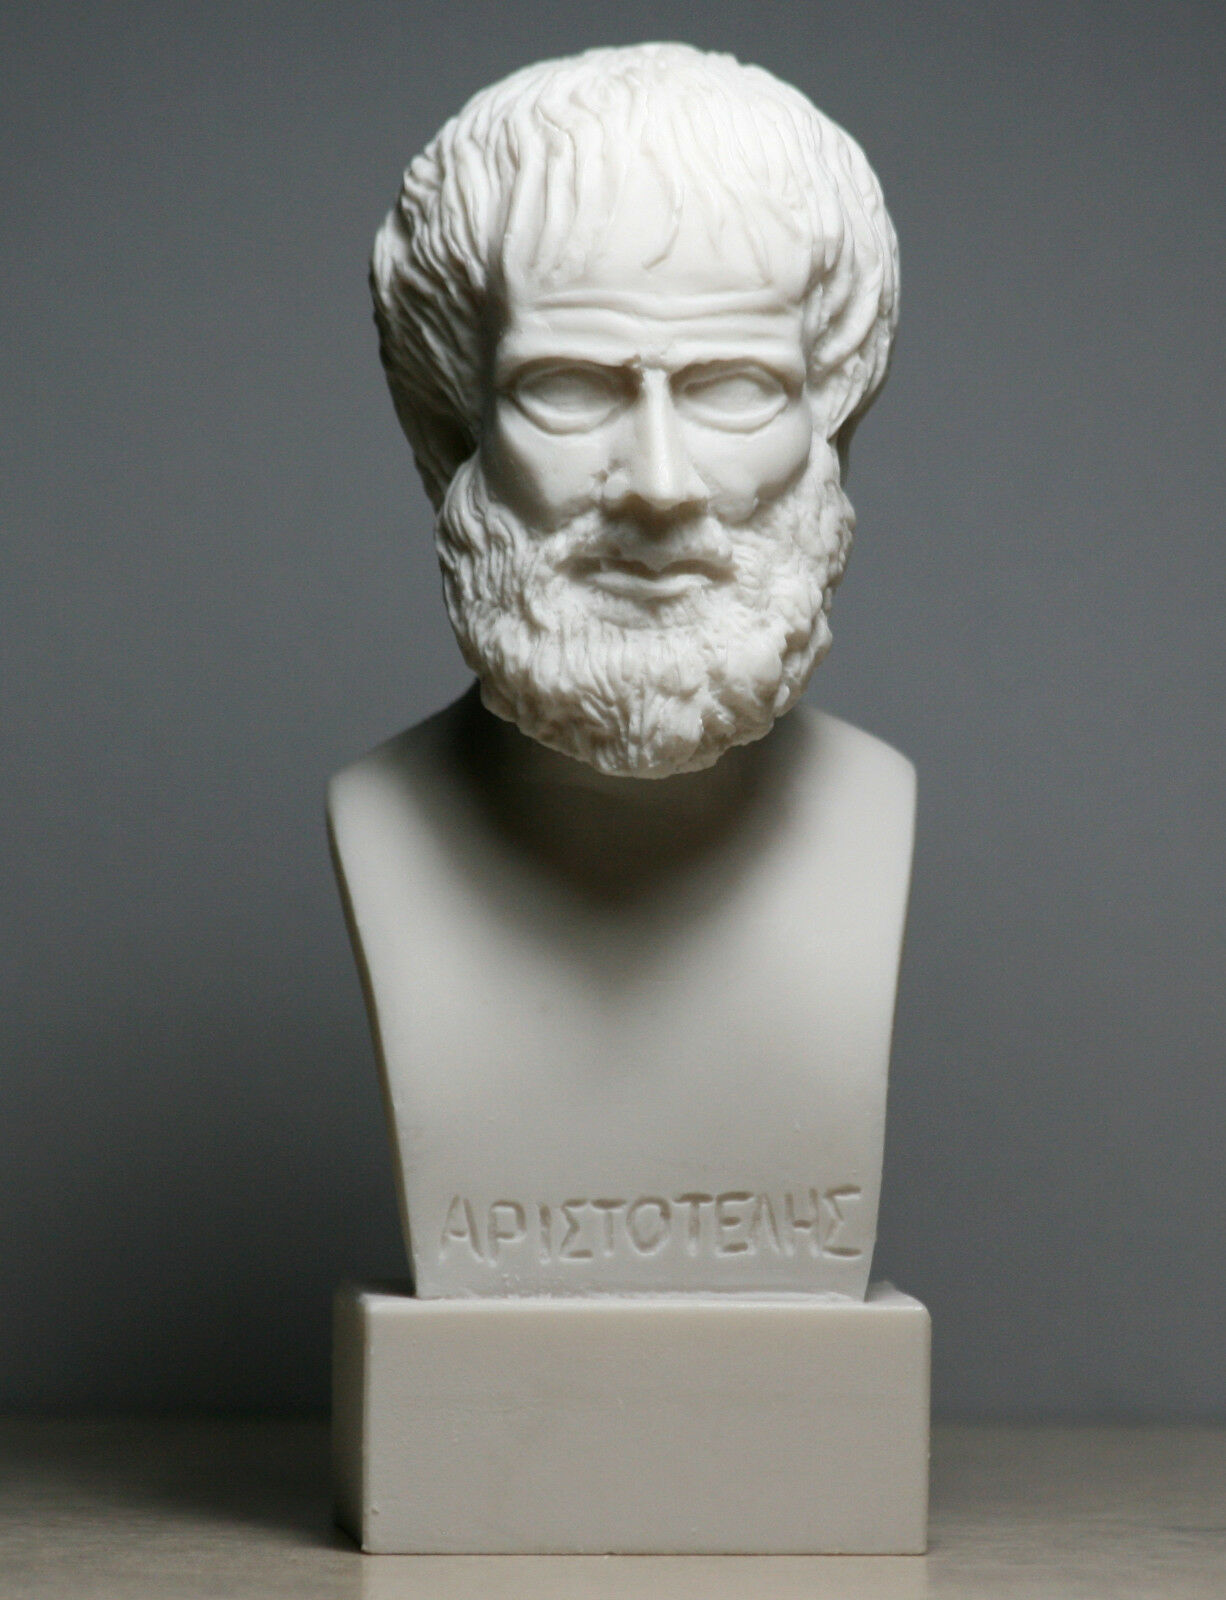 a life biography of aristotle greek philosopher and scientist Biography of aristotle, philosopher he was born in a greek colony about 350 years before the birth later in life aristotle had a son whom he named.